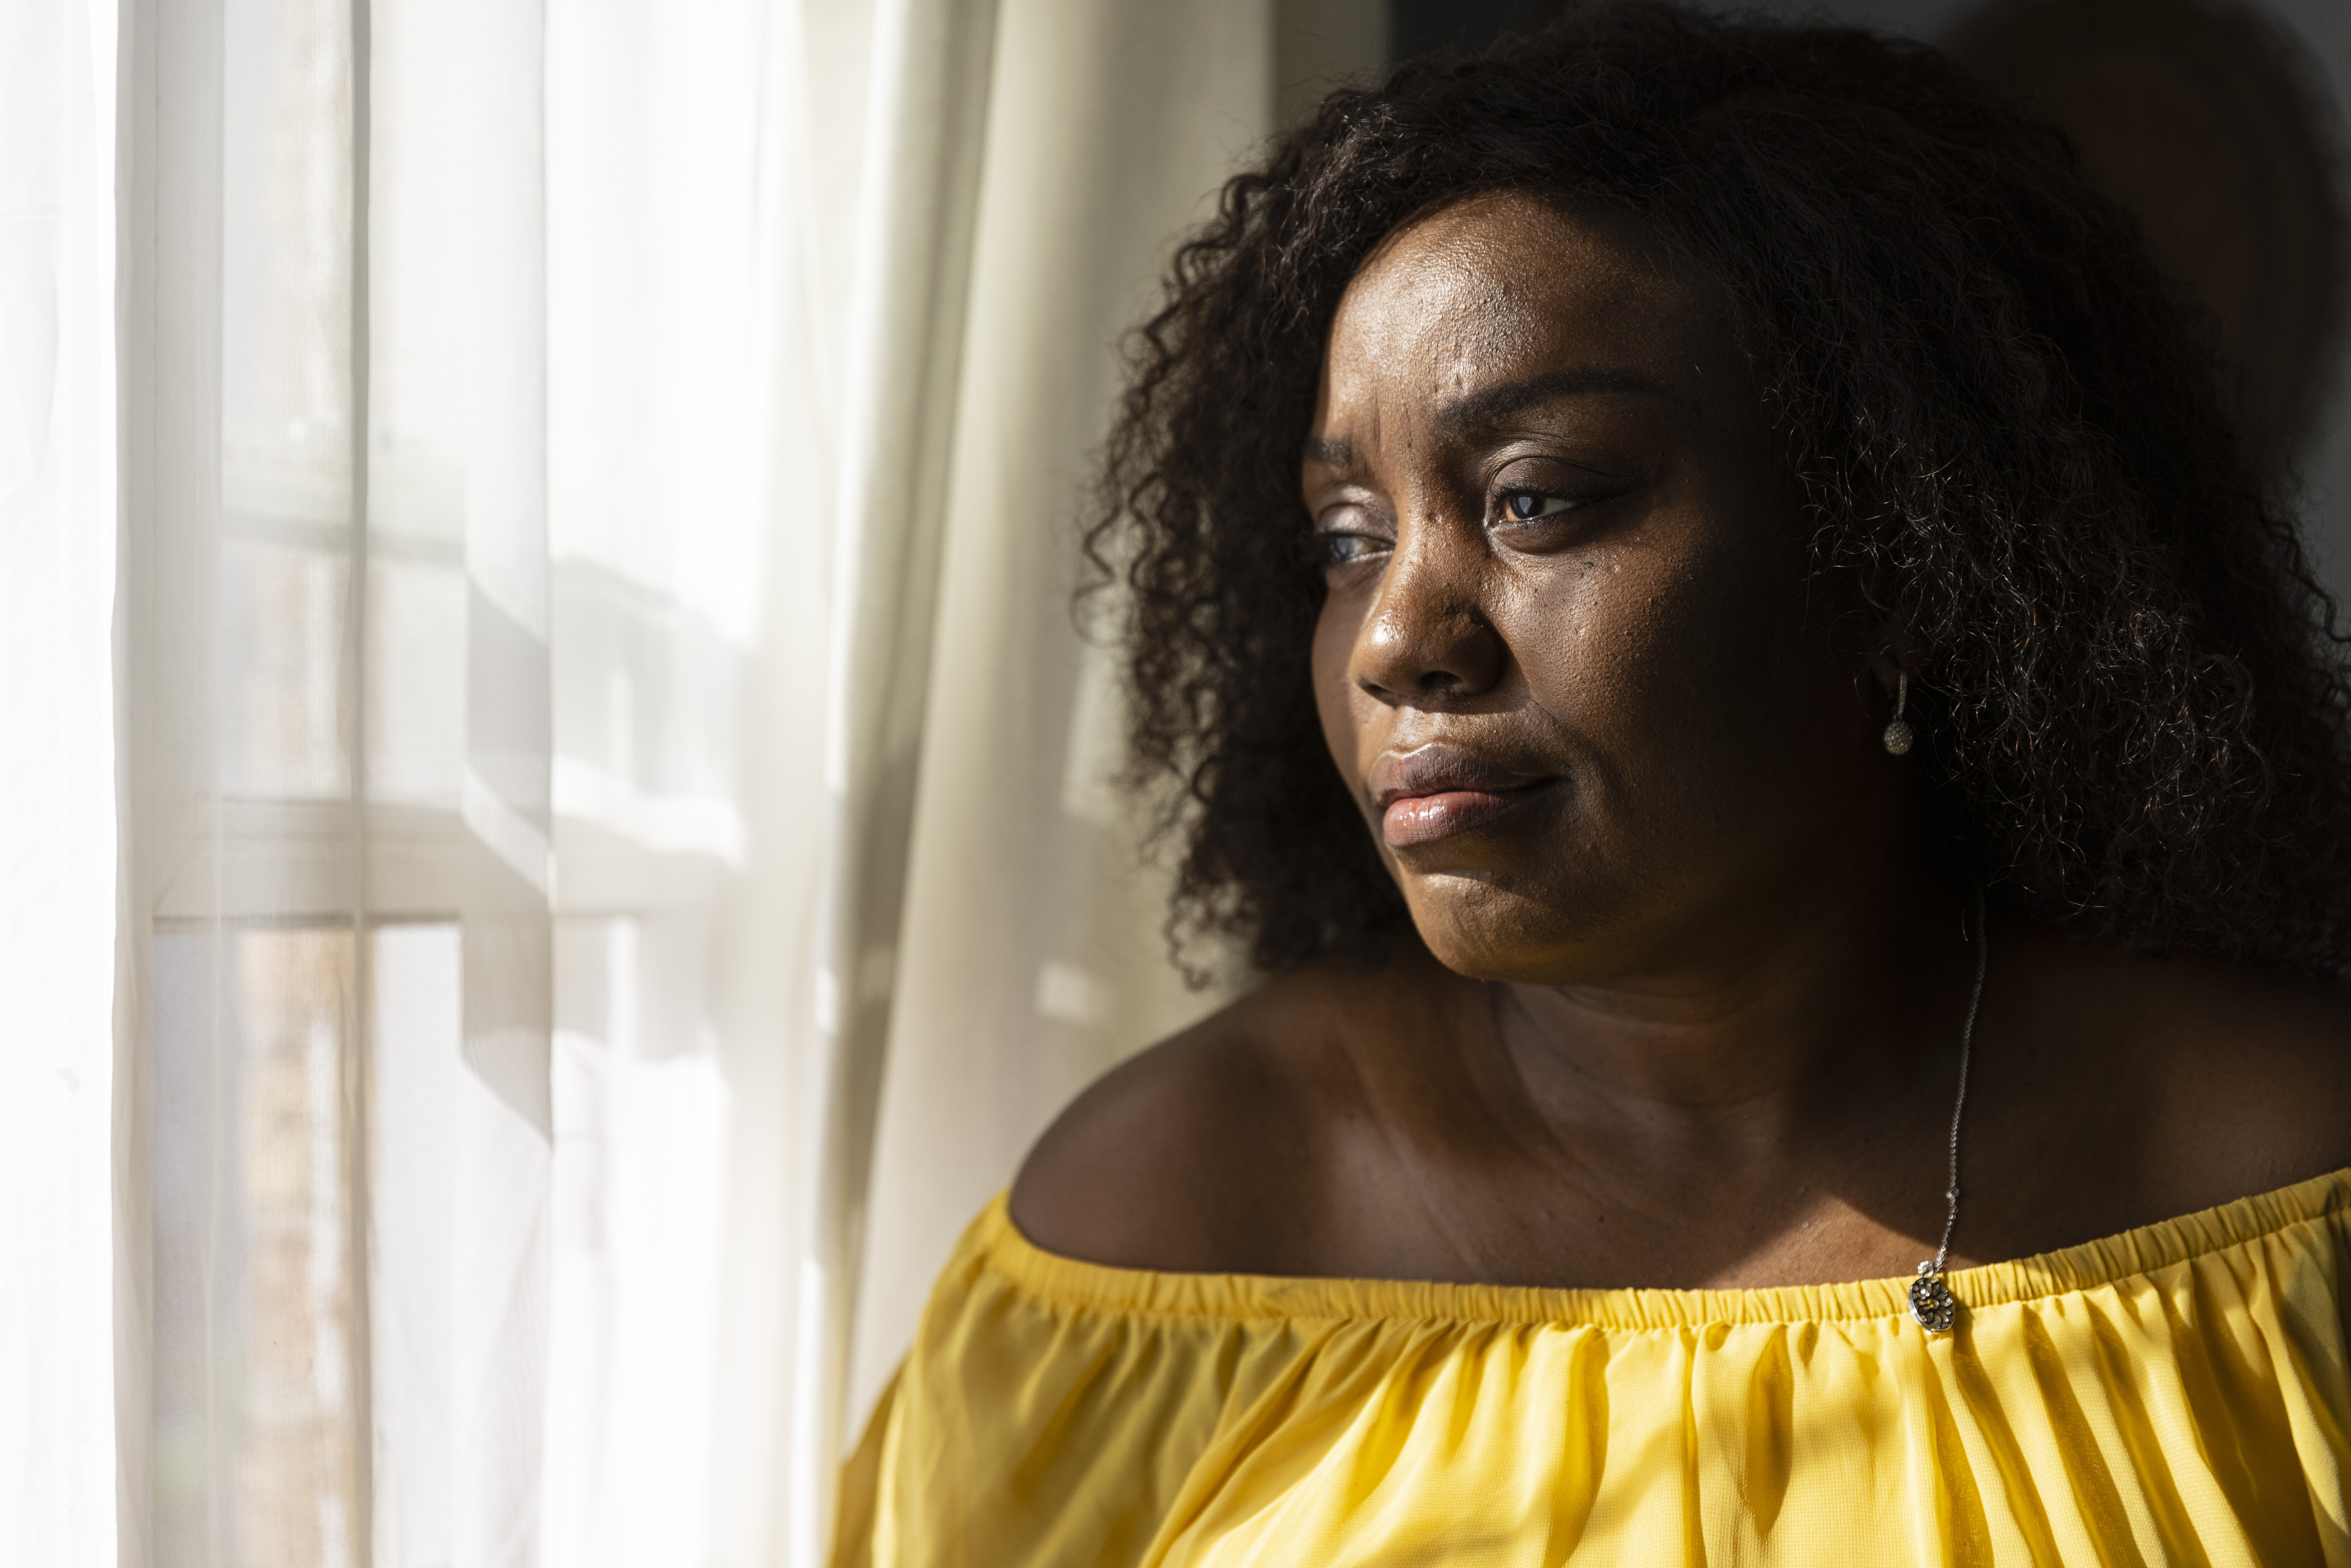 Beverly Chukwudozie at home in Evanston. She has battled to enjoy a full life despite the pain of sickle cell disease for as long as she can remember.